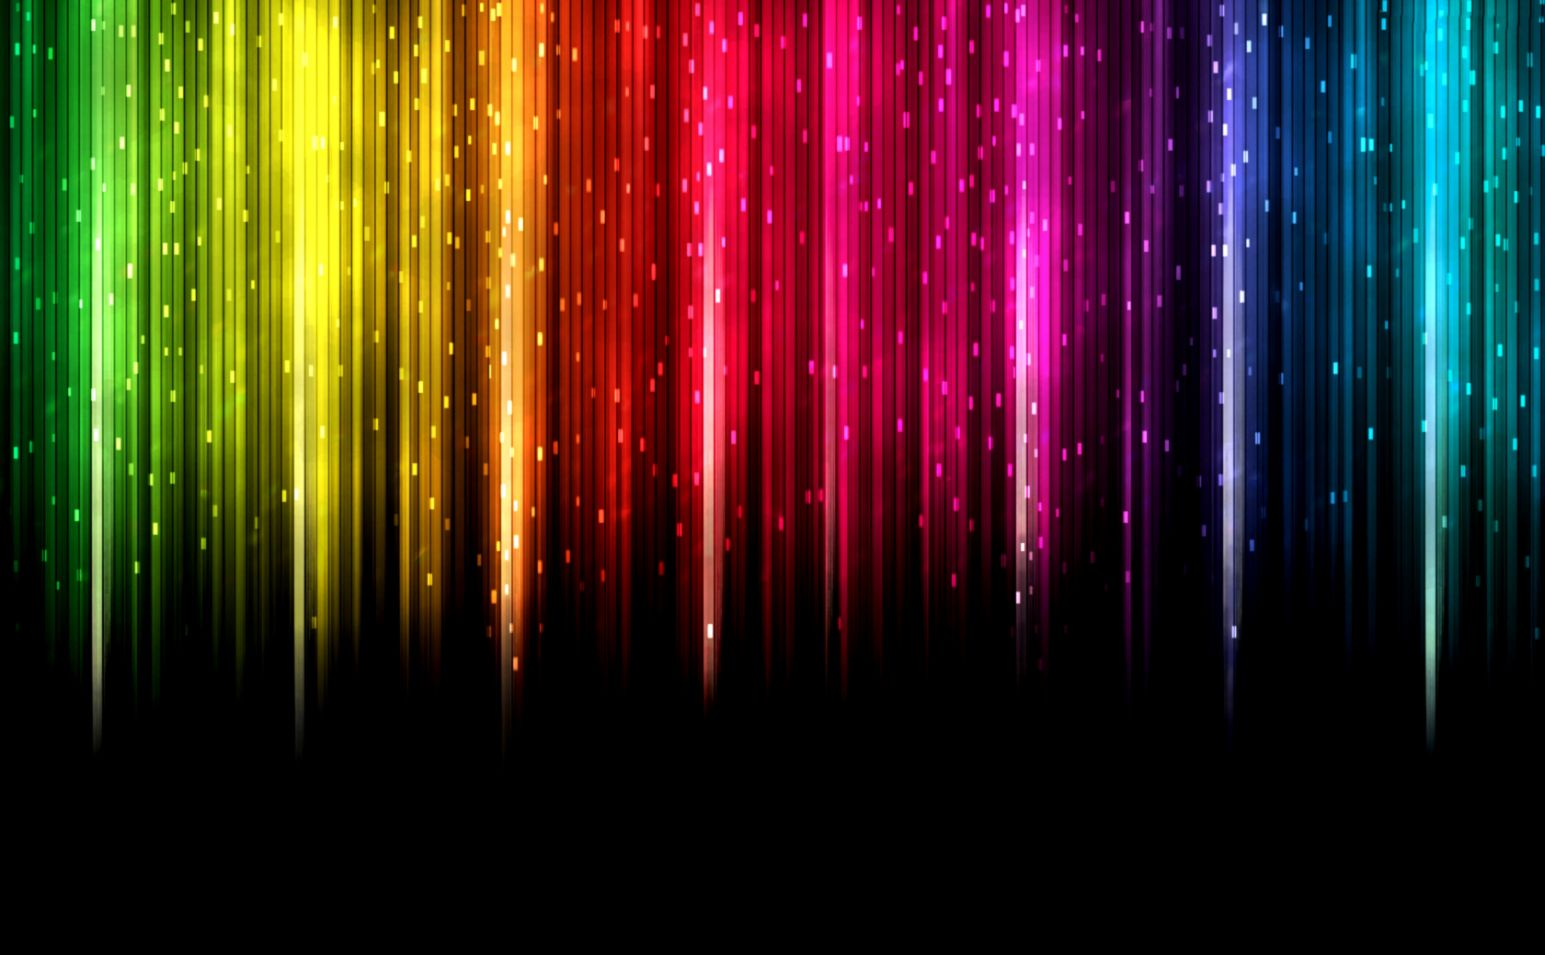 44 Rainbow HD Wallpapers For Free Download